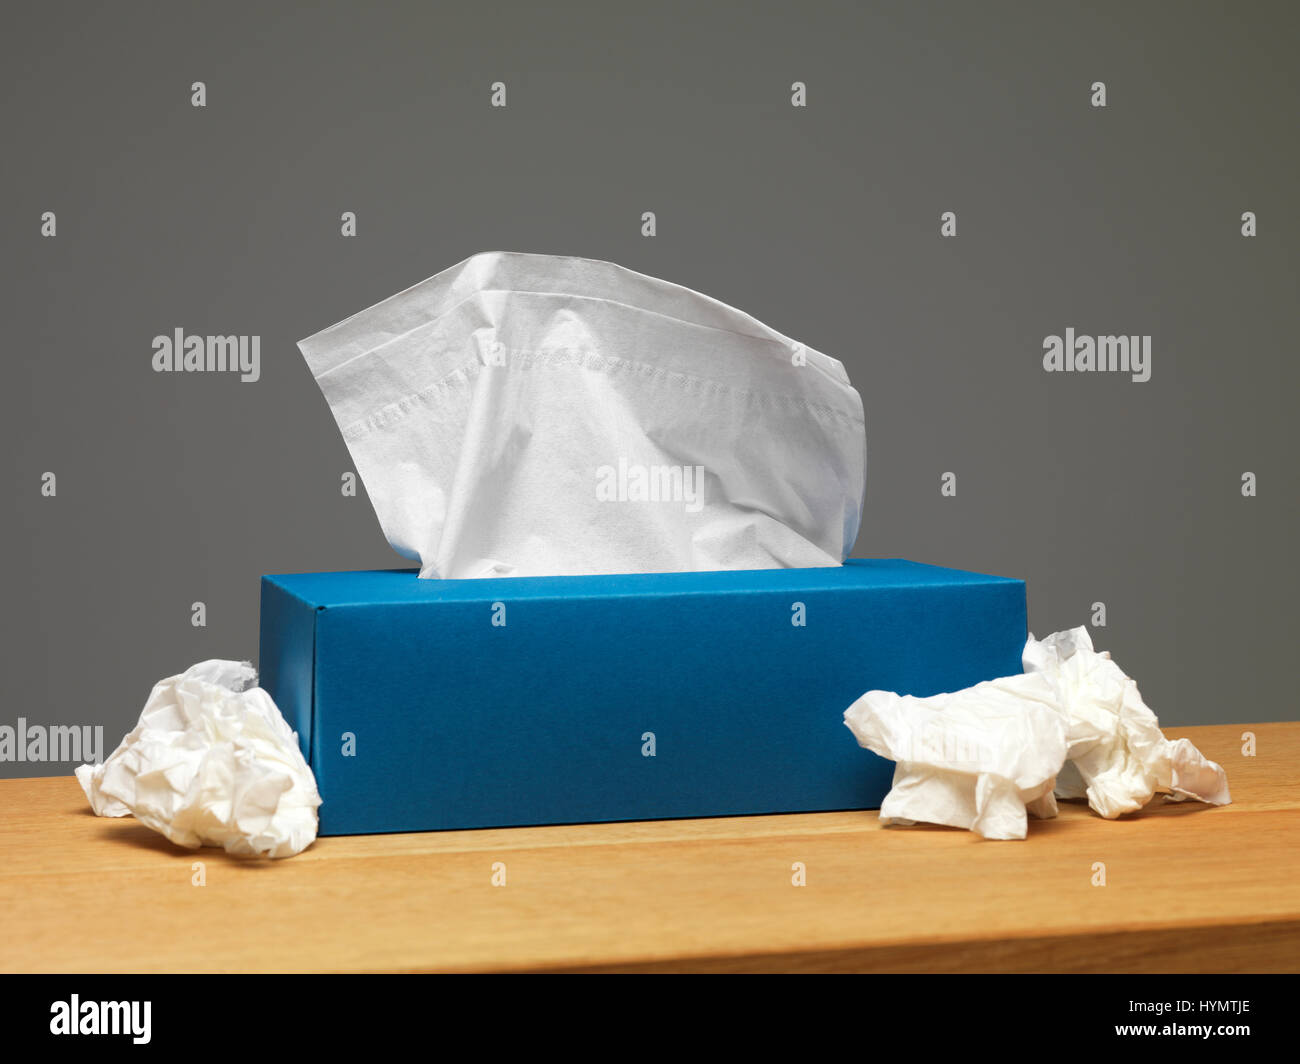 Tissue box on a sideboard Stock Photo